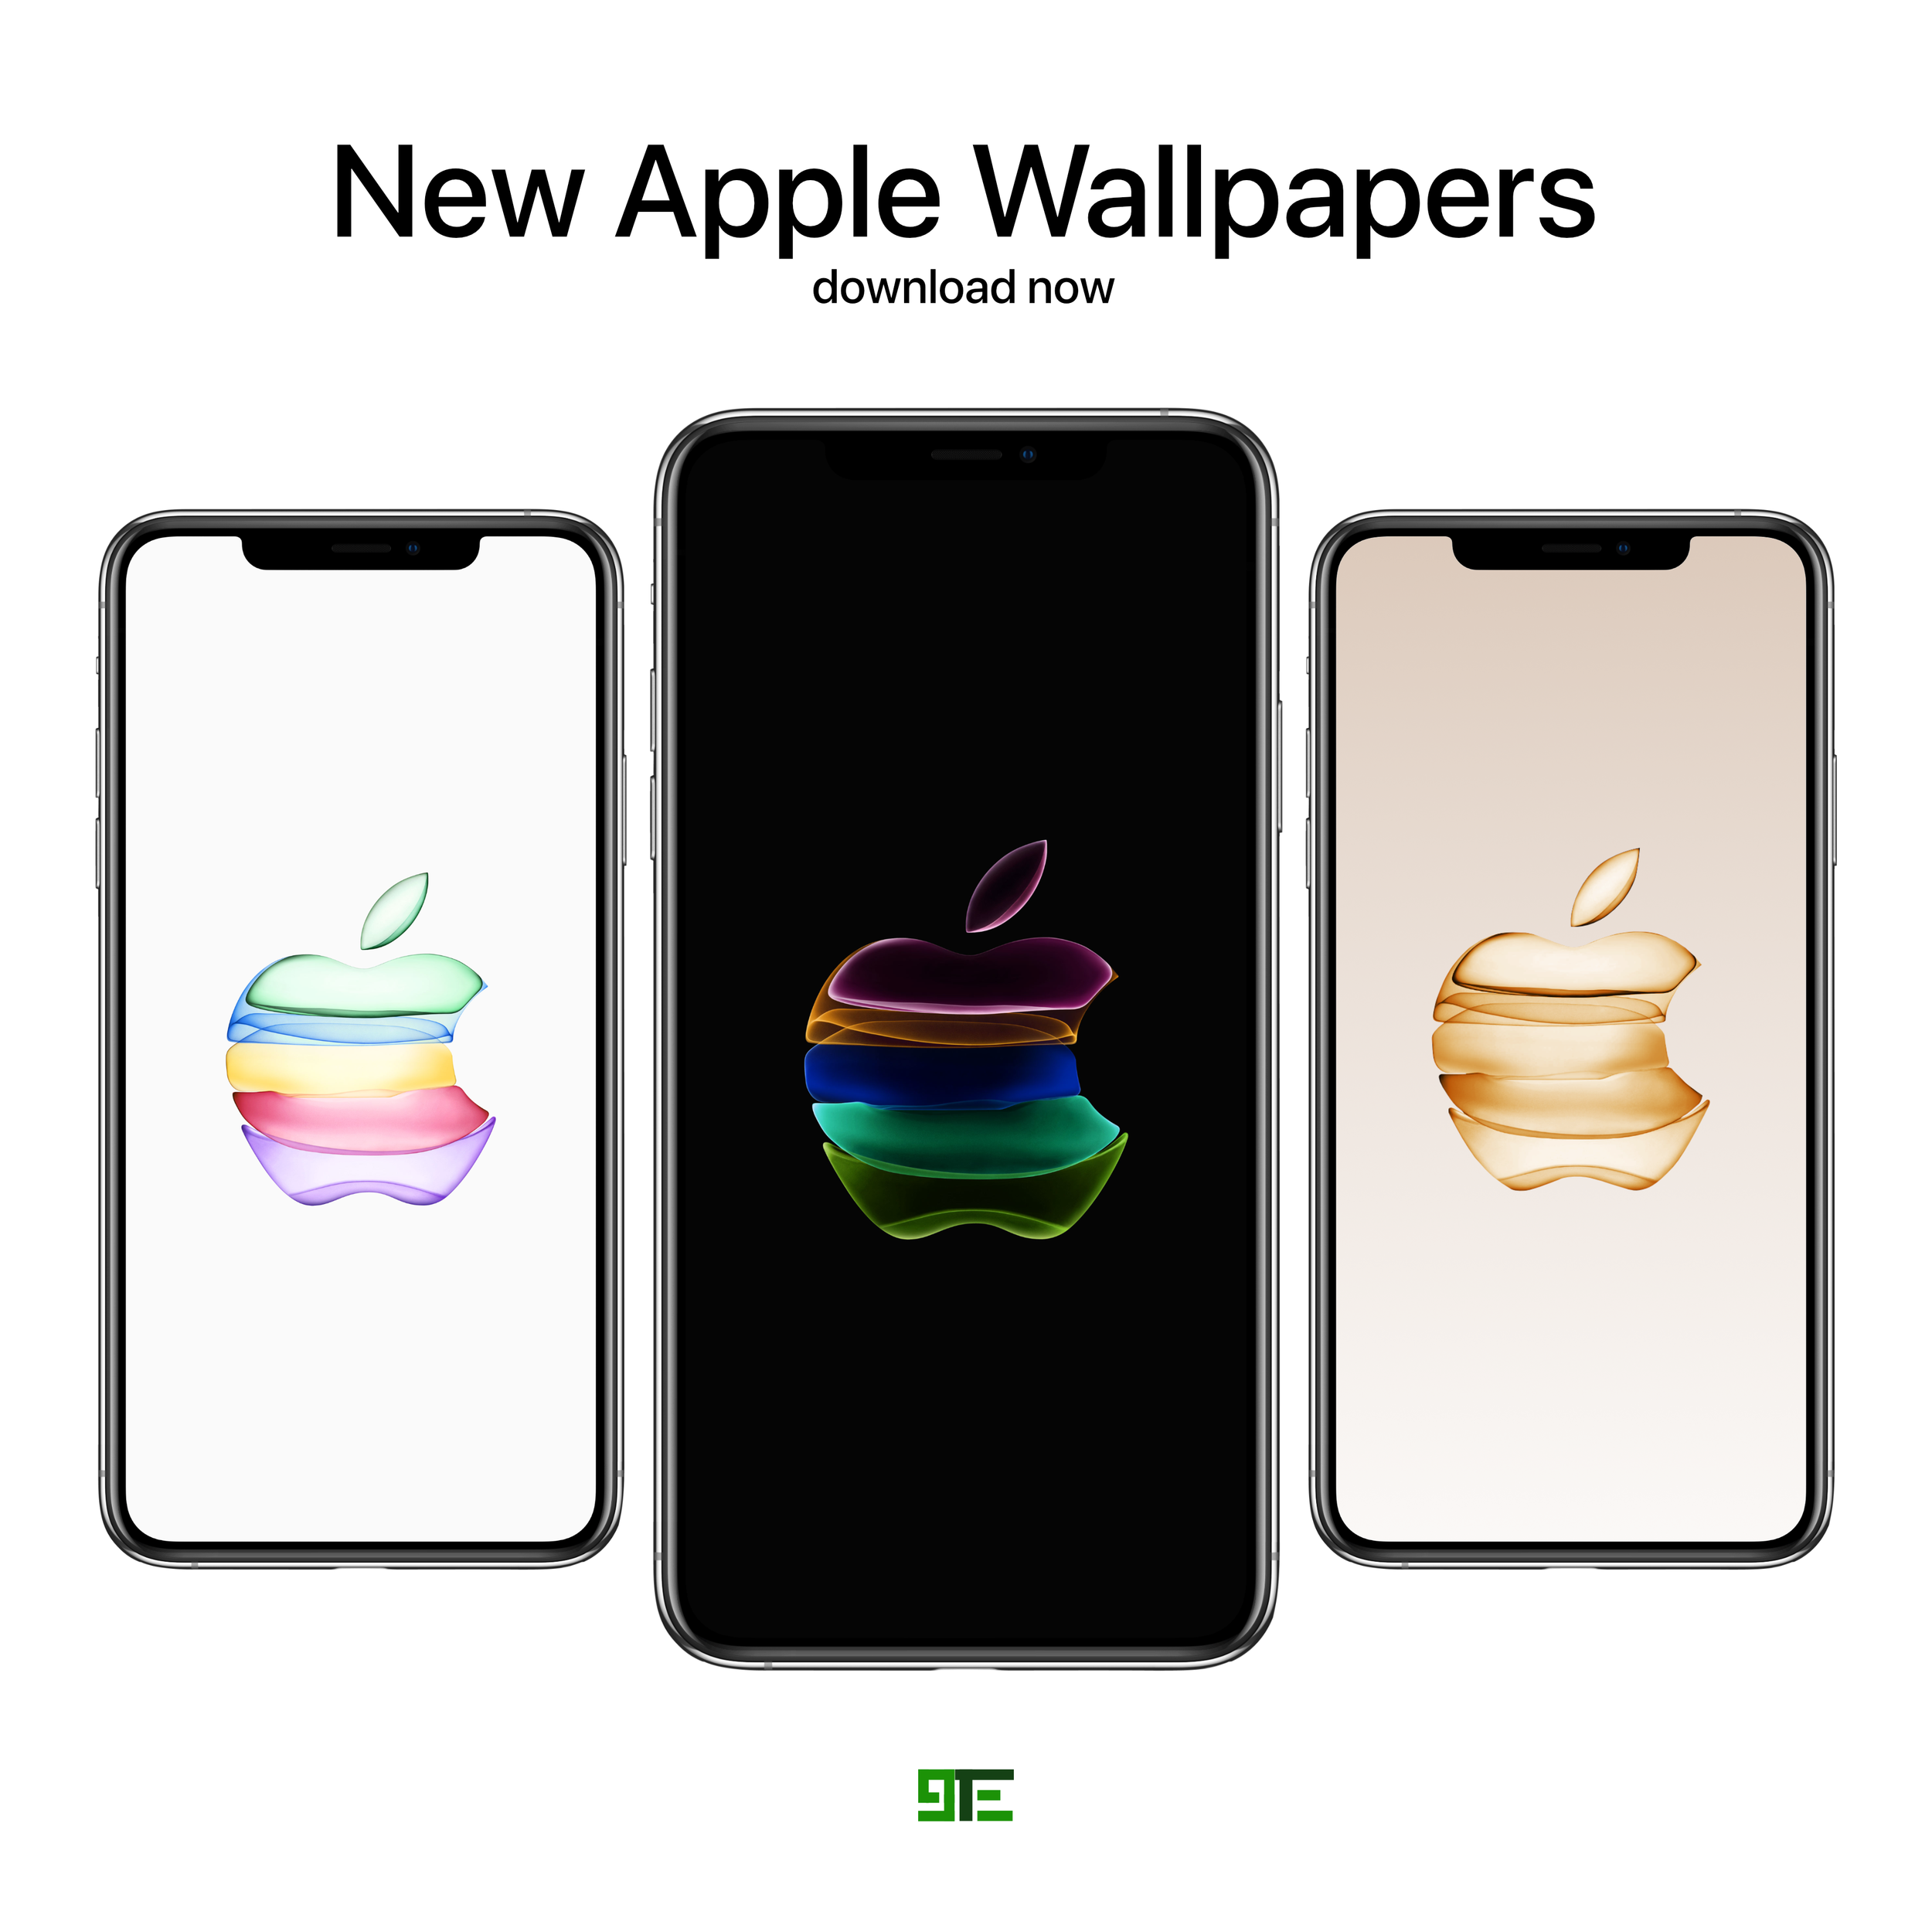 September Apple Event Wallpapers 9 Tech Eleven